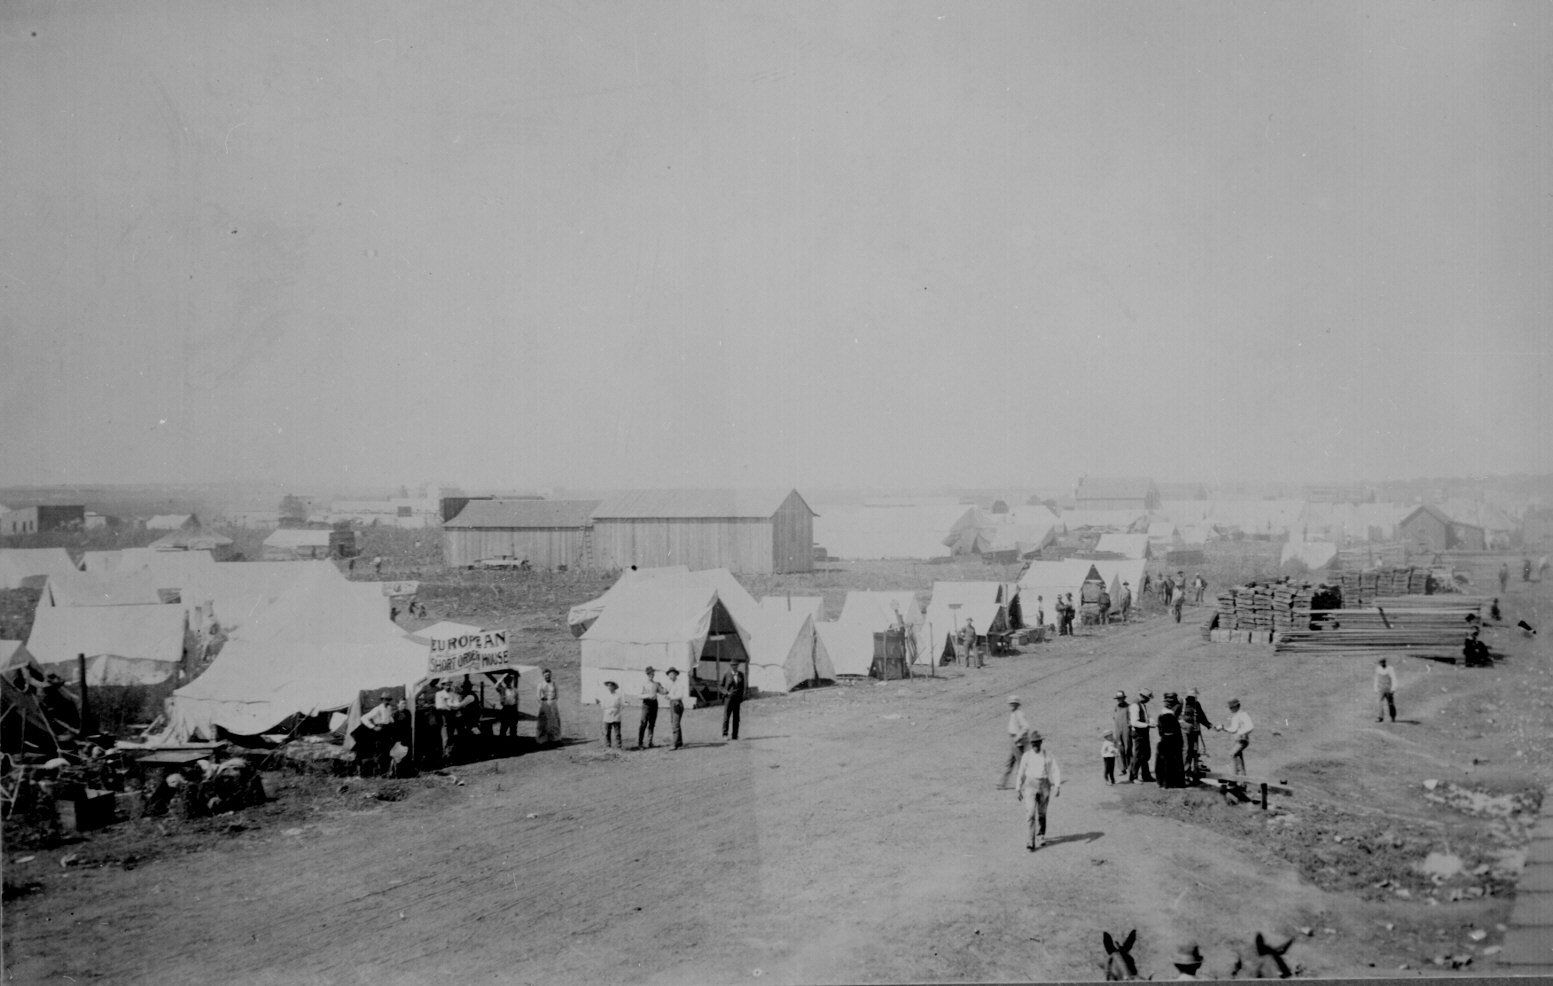 """Tent Cities"" that popped up on the first day of the Land Rush. This is Guthrie, OK on April 22nd, 1889."